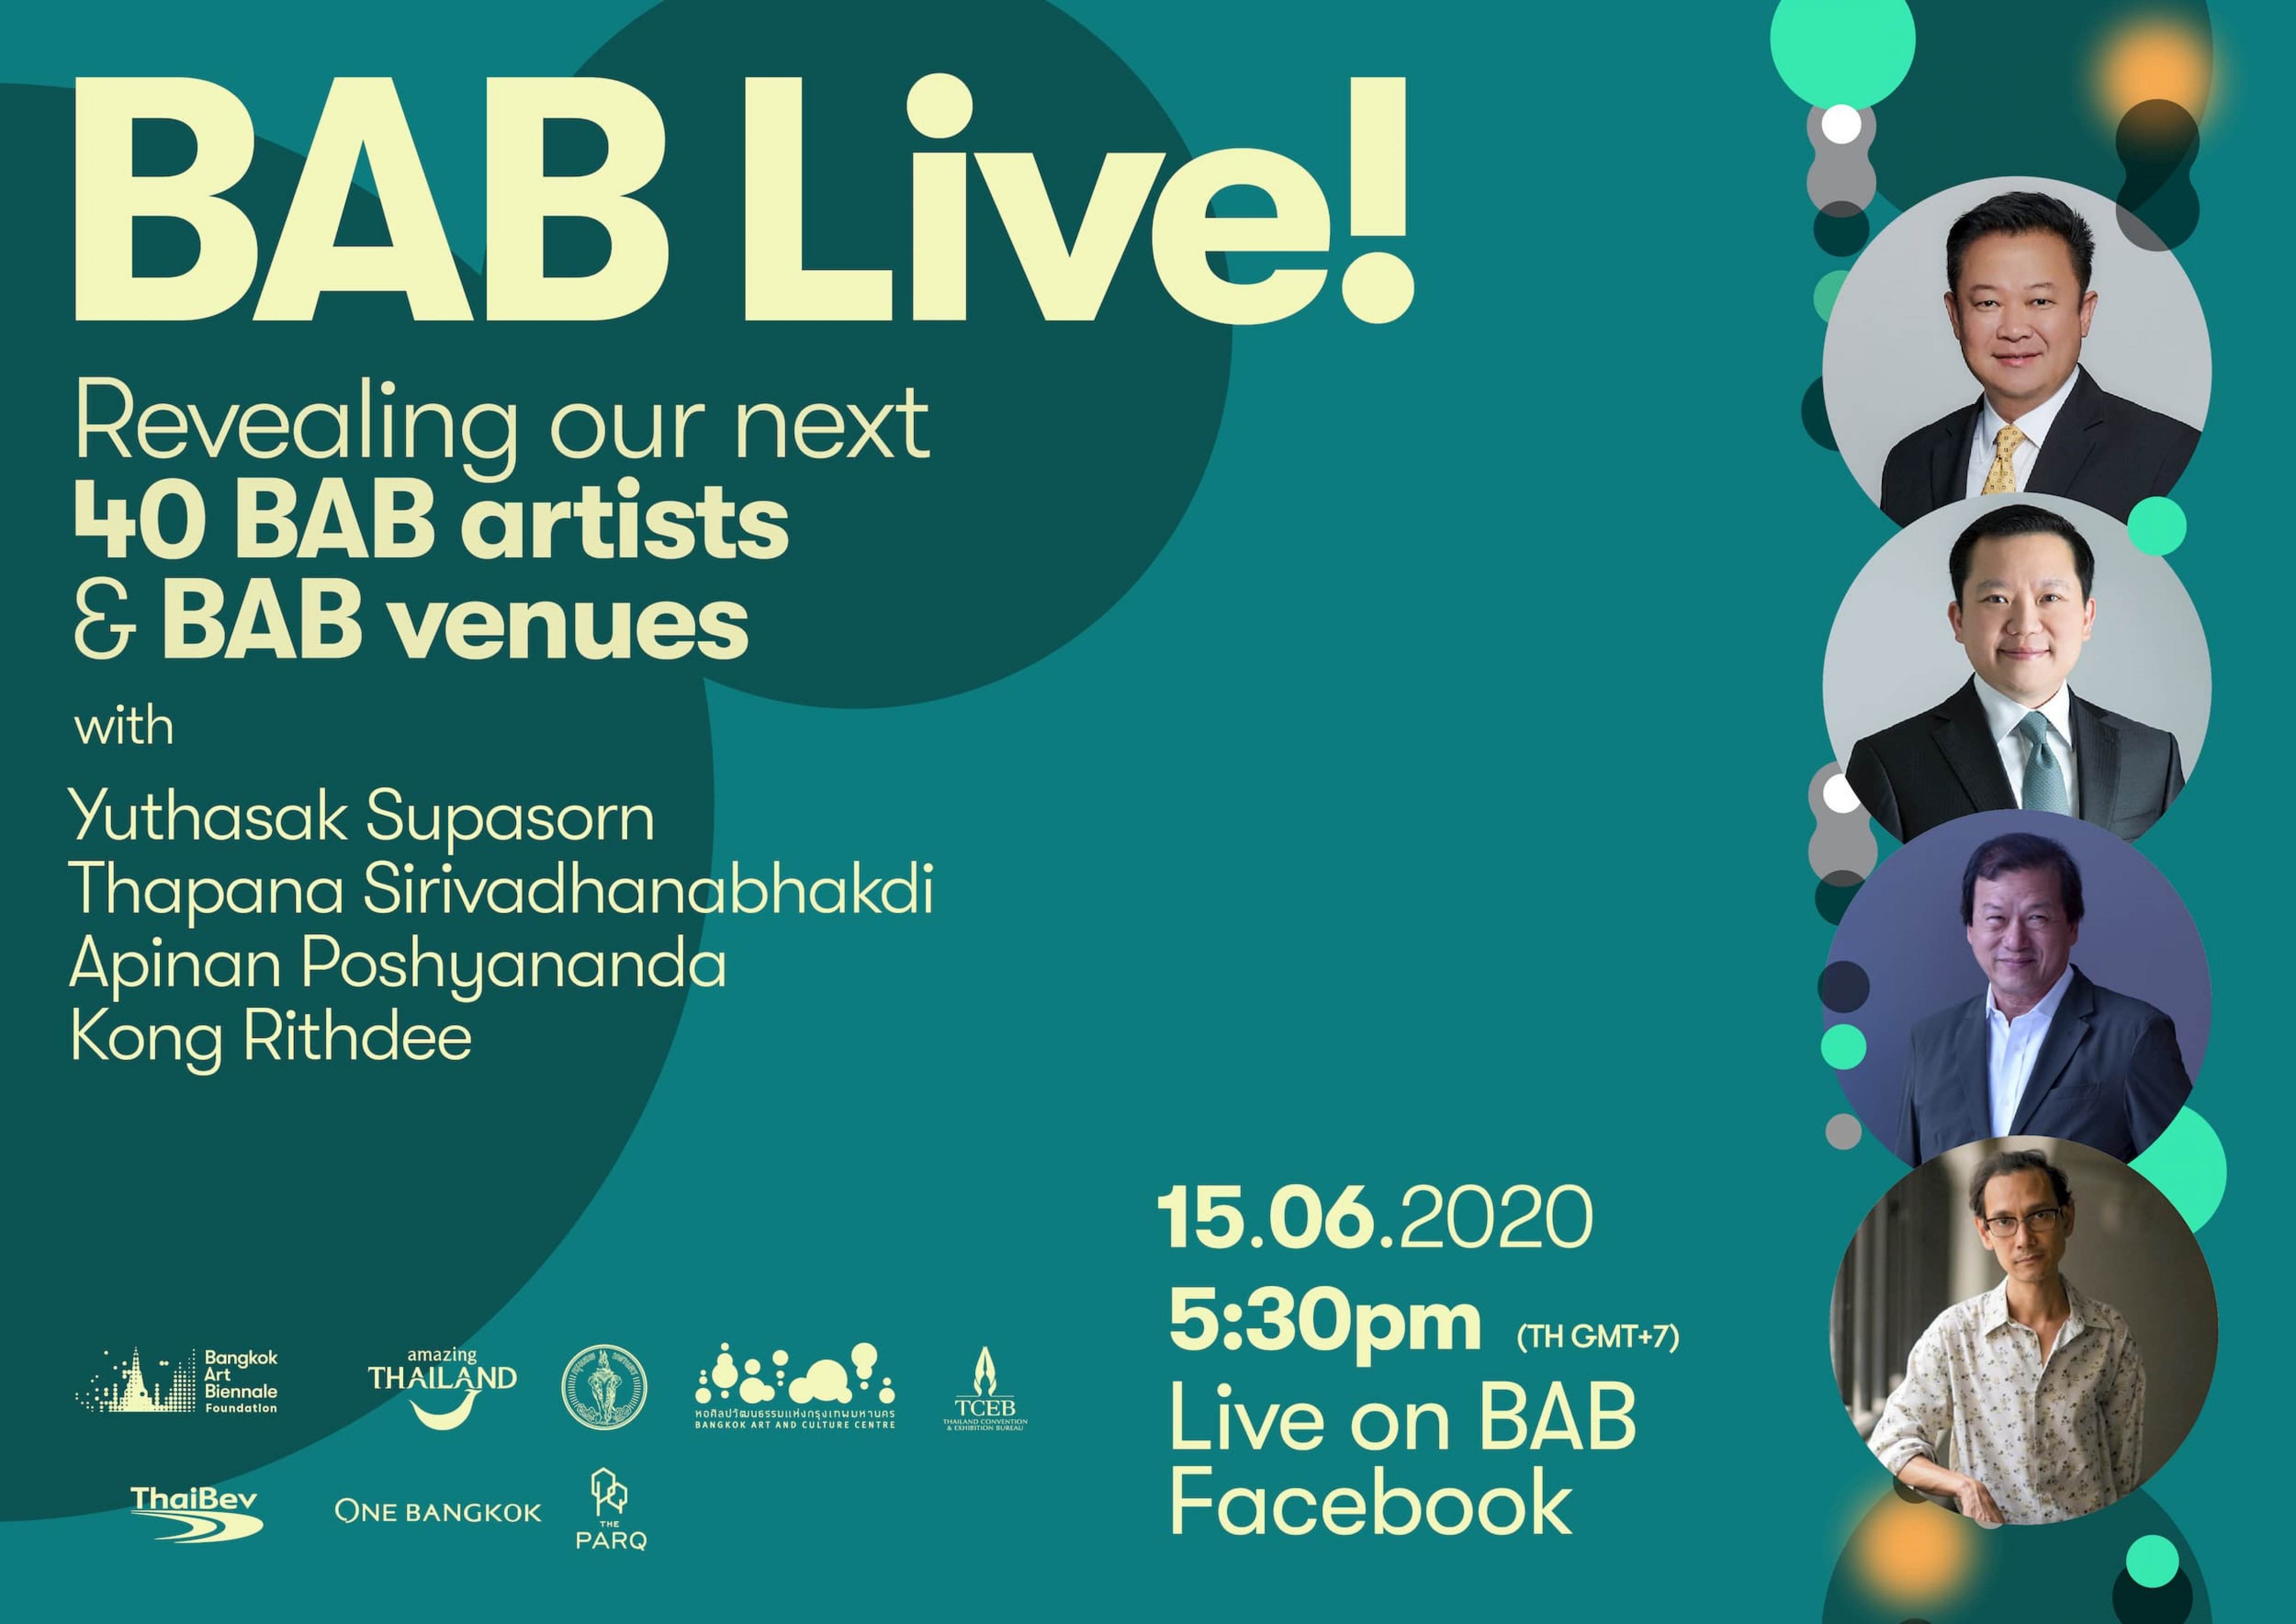 BAB Live! Revealing our next 40 BAB 2020 Artists & Venues